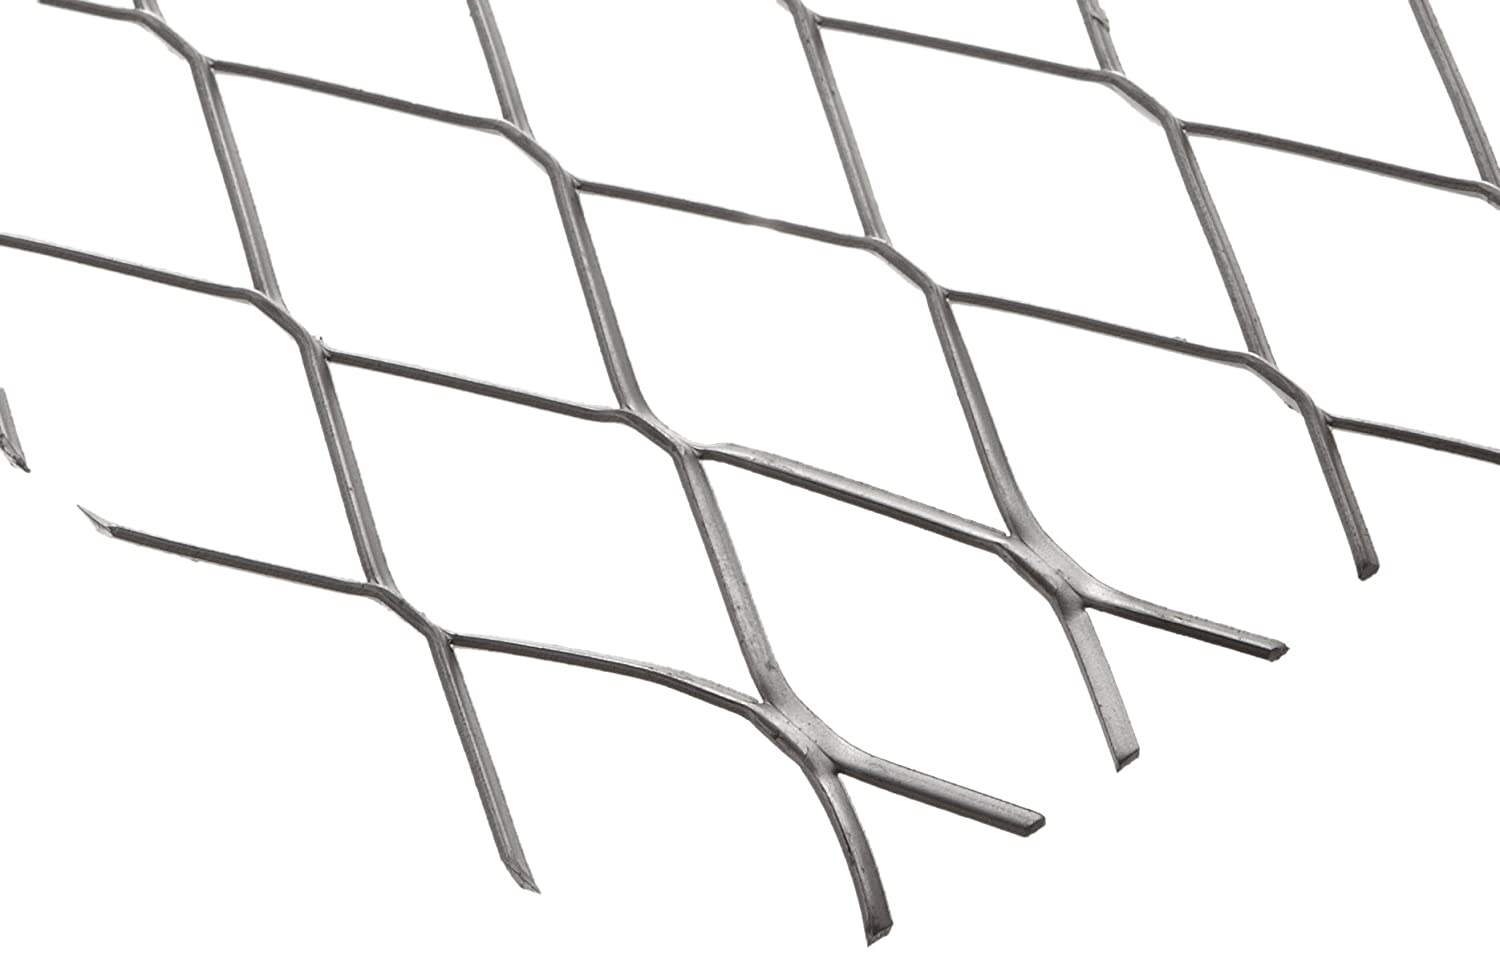 """Carbon Steel Raised Expanded Sheet, Unpolished (Mill) Finish, 24"""" Width, 24"""" Length, 1.00"""" SWD x 2.40"""" LWD Opening, 16 Gauge"""